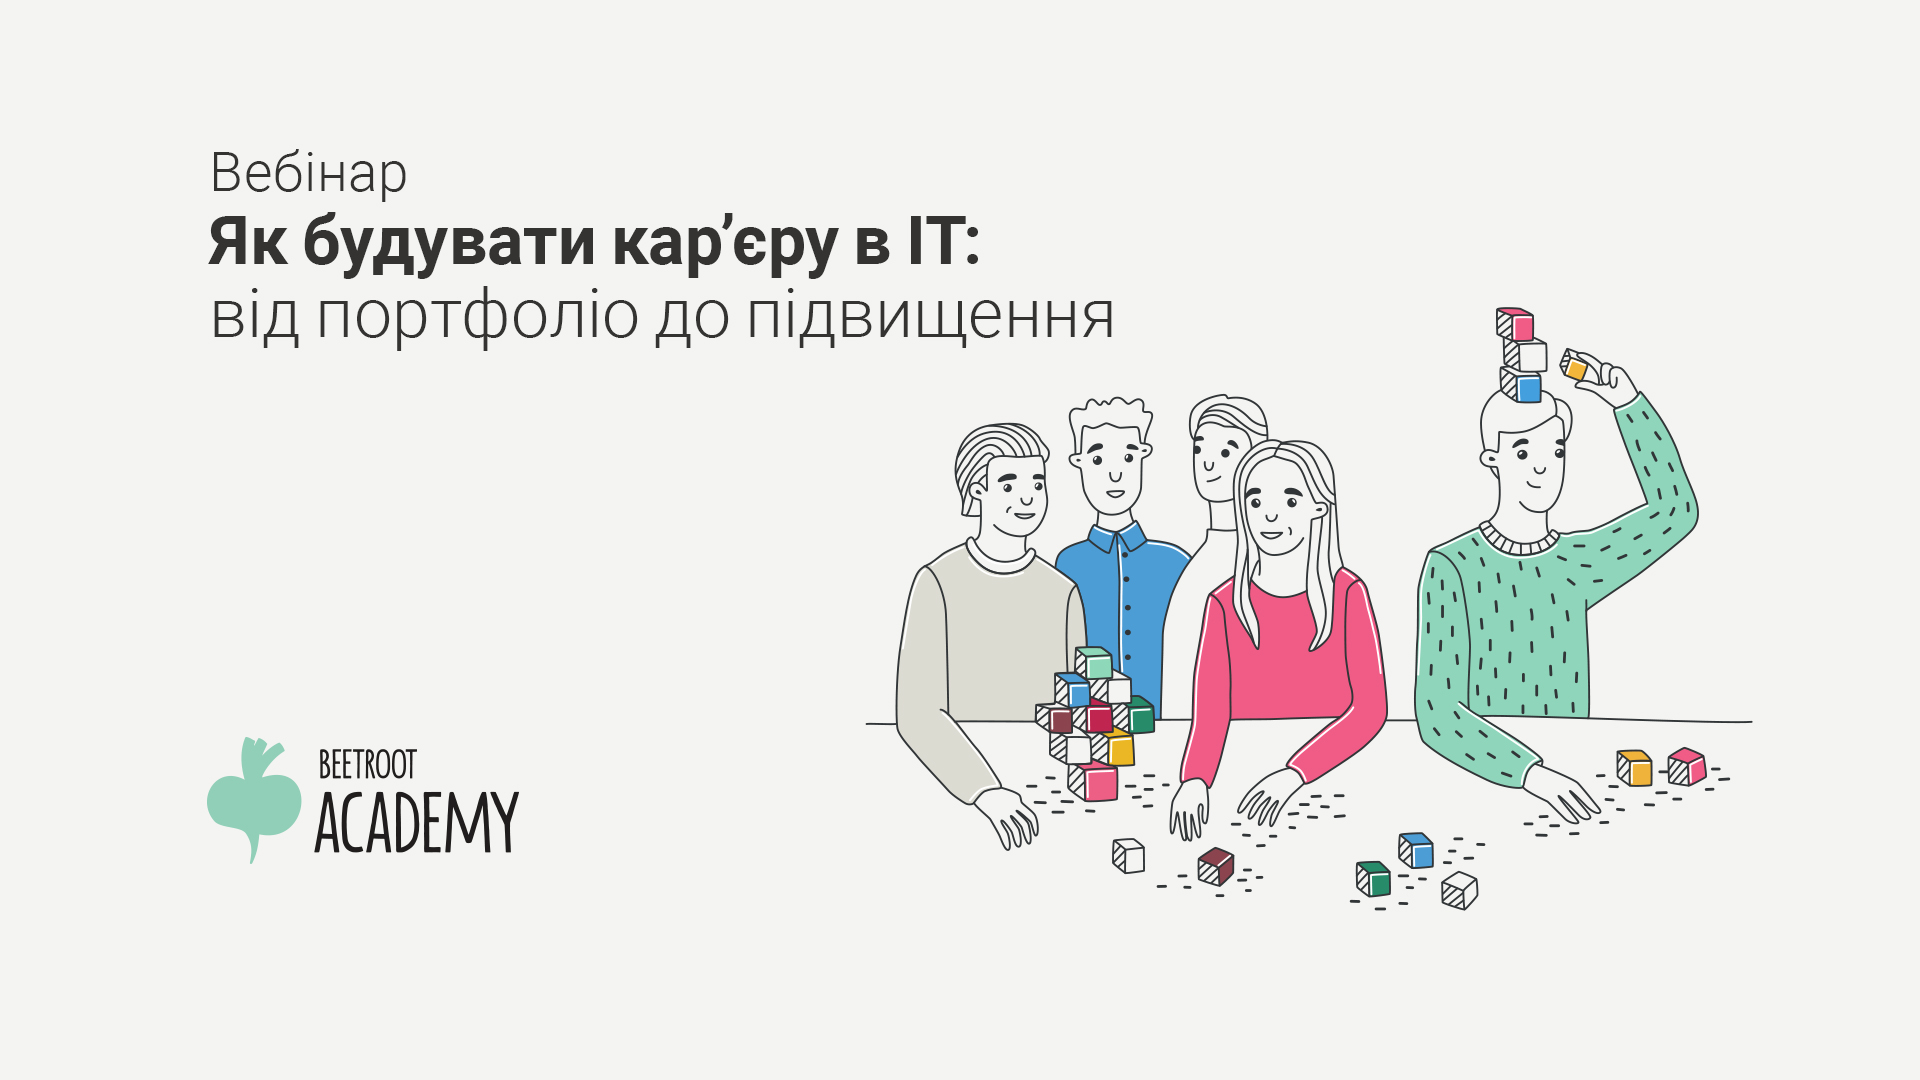 Як будувати кар'єру в ІТ: від портфоліо до підвищення